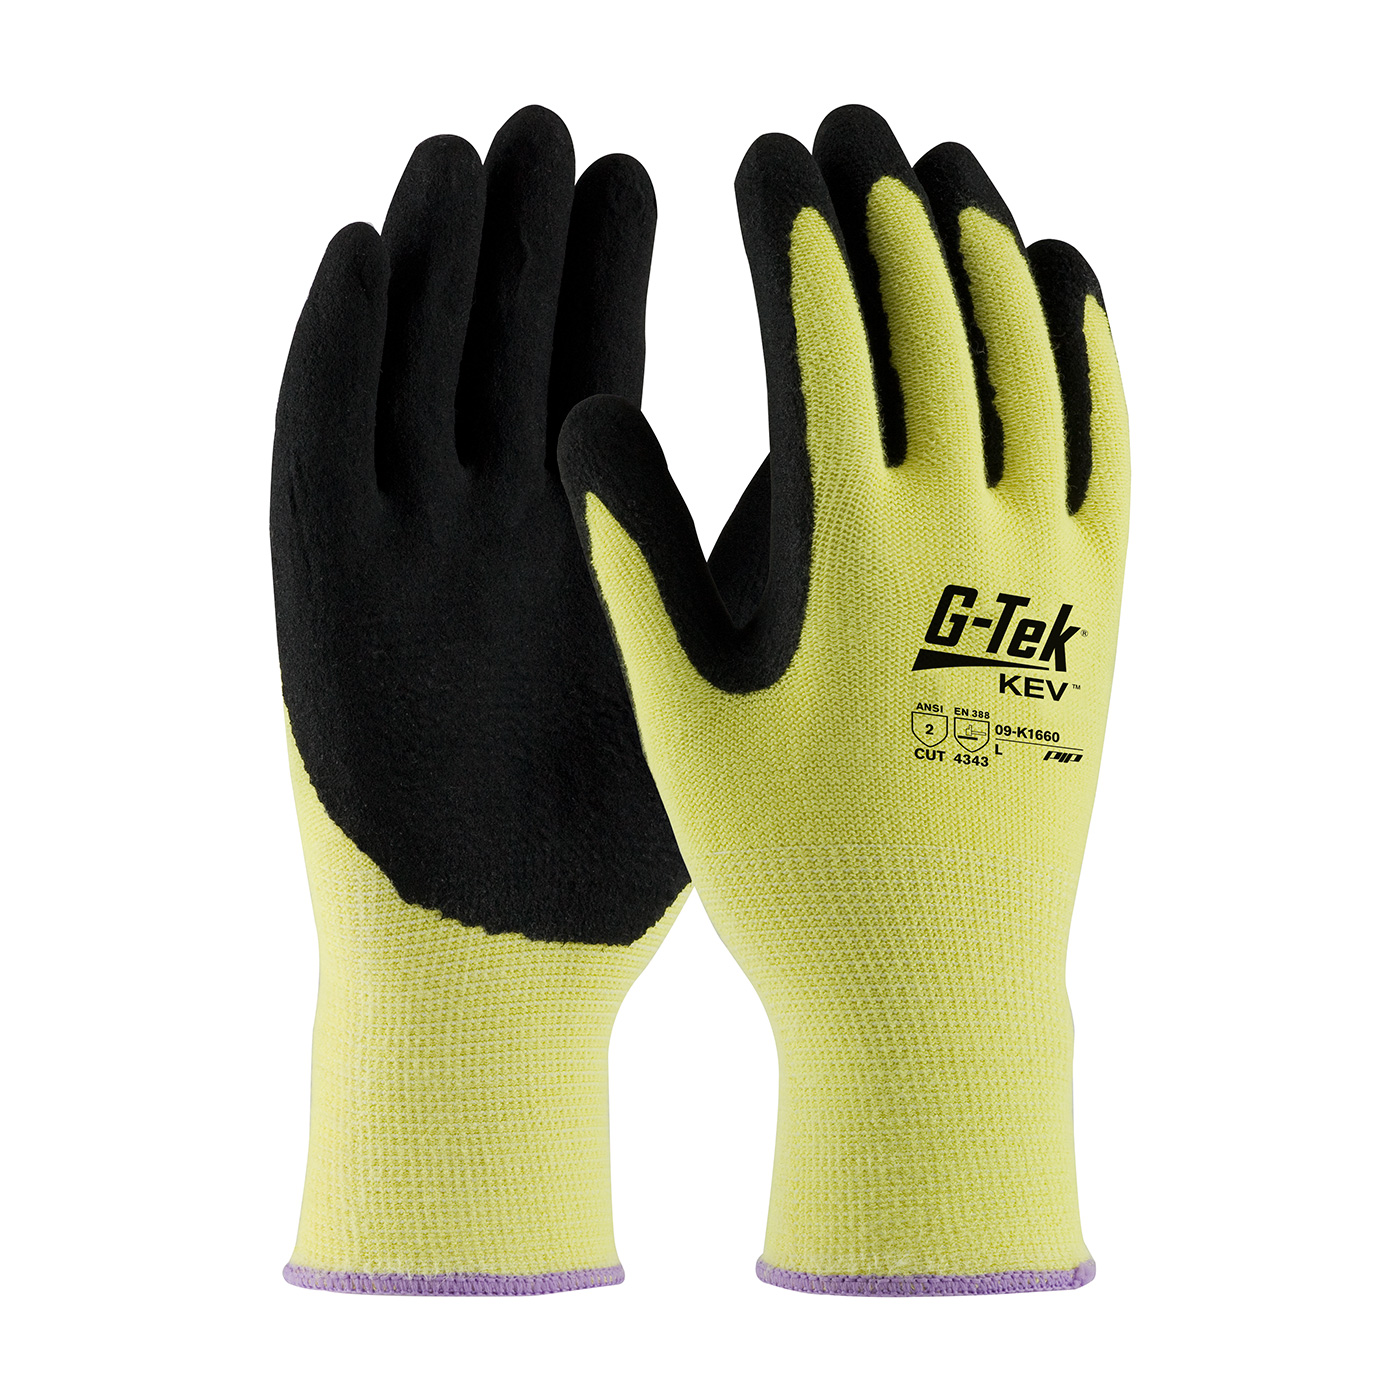 09-K1660 G-Tek™ KEV 13 gauge Kevlar knit gloves with MicroSurface nitrile grip